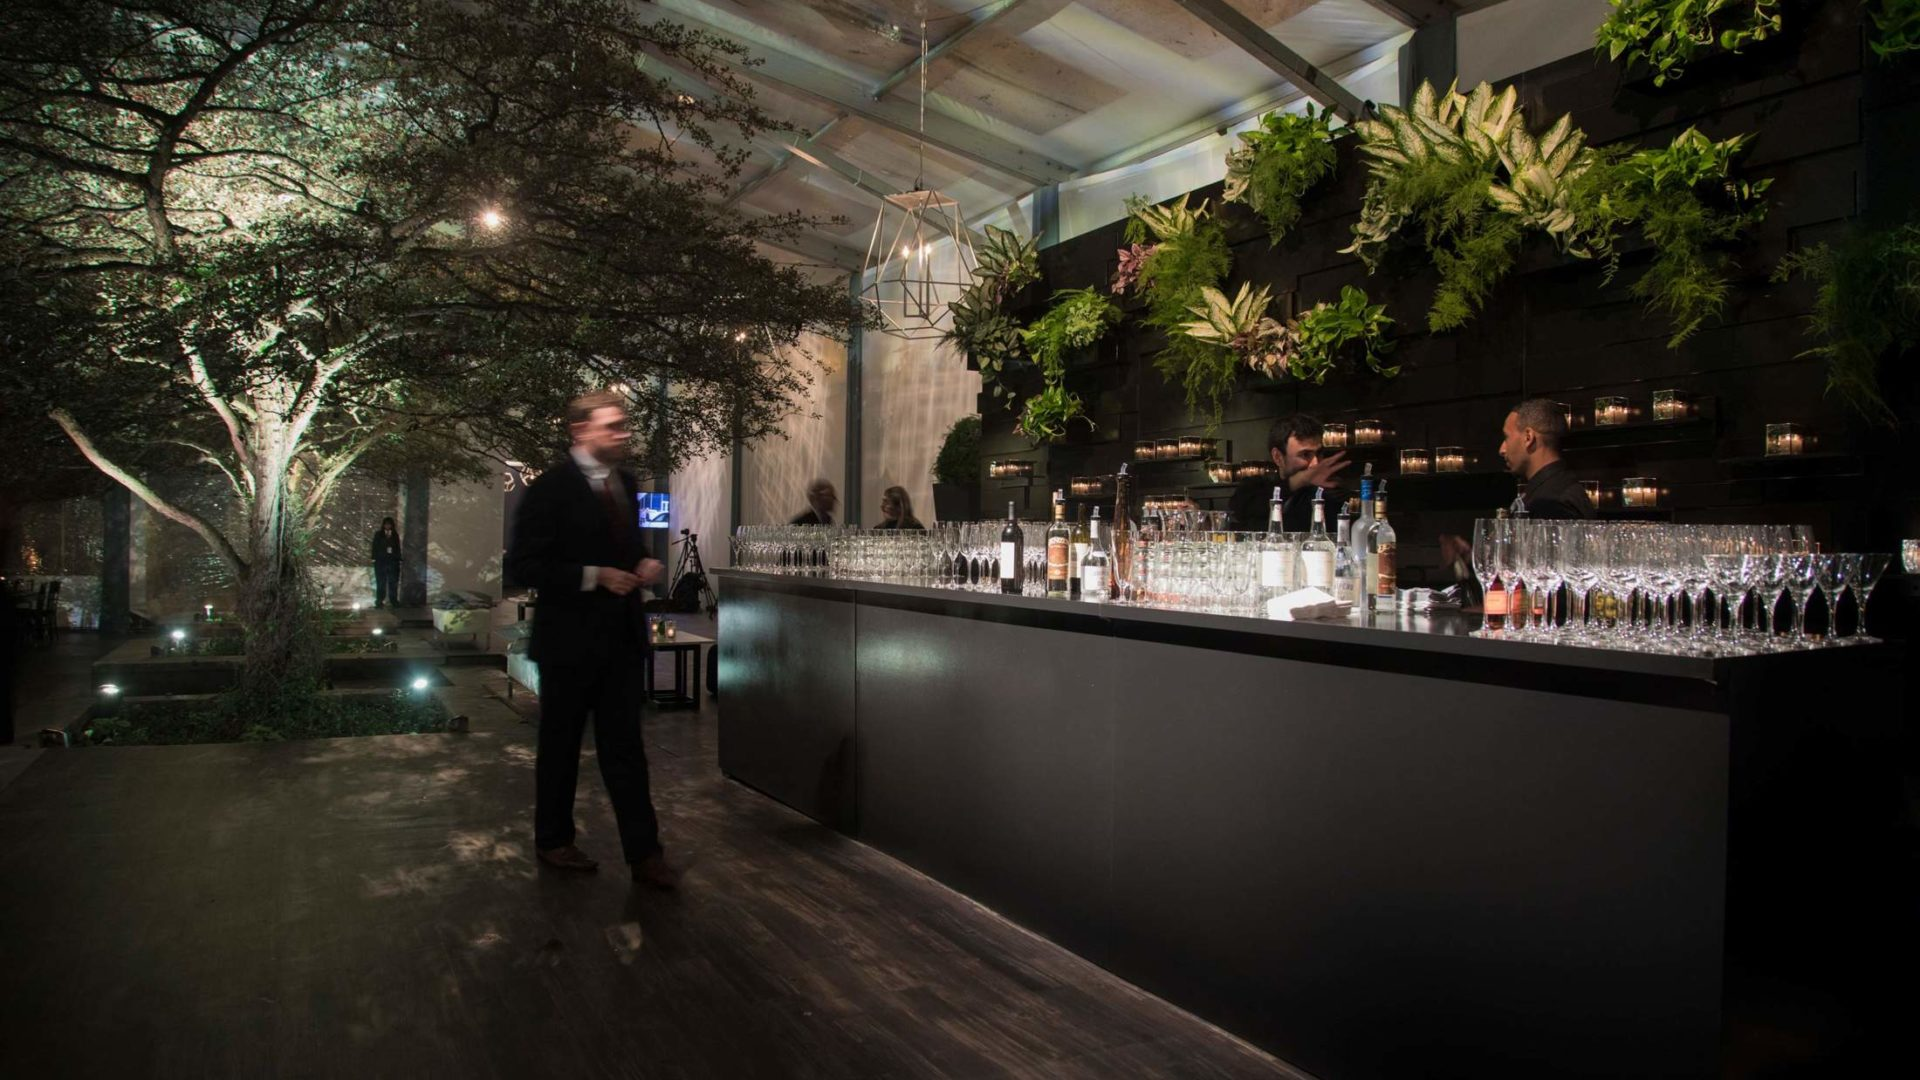 Bar with plants behind